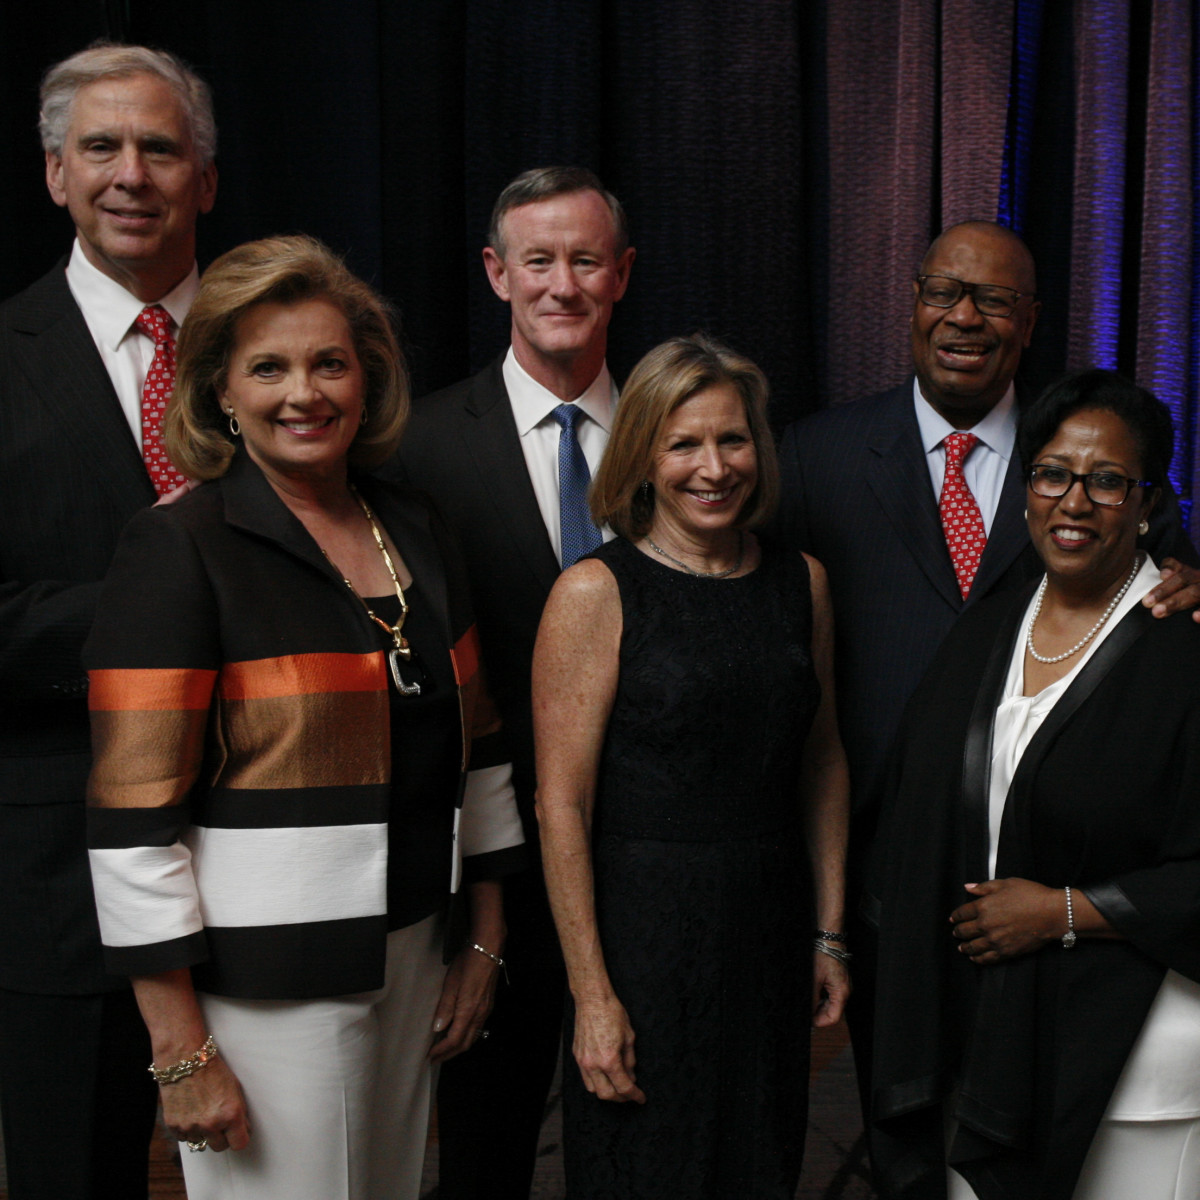 Texas Children's Cancer Center dinner, 5/16 Jim Gordon, Nancy Gordon, Chancellor William H. McRaven, Georgeann McRaven, Jodie Jiles, Sonny Jiles.